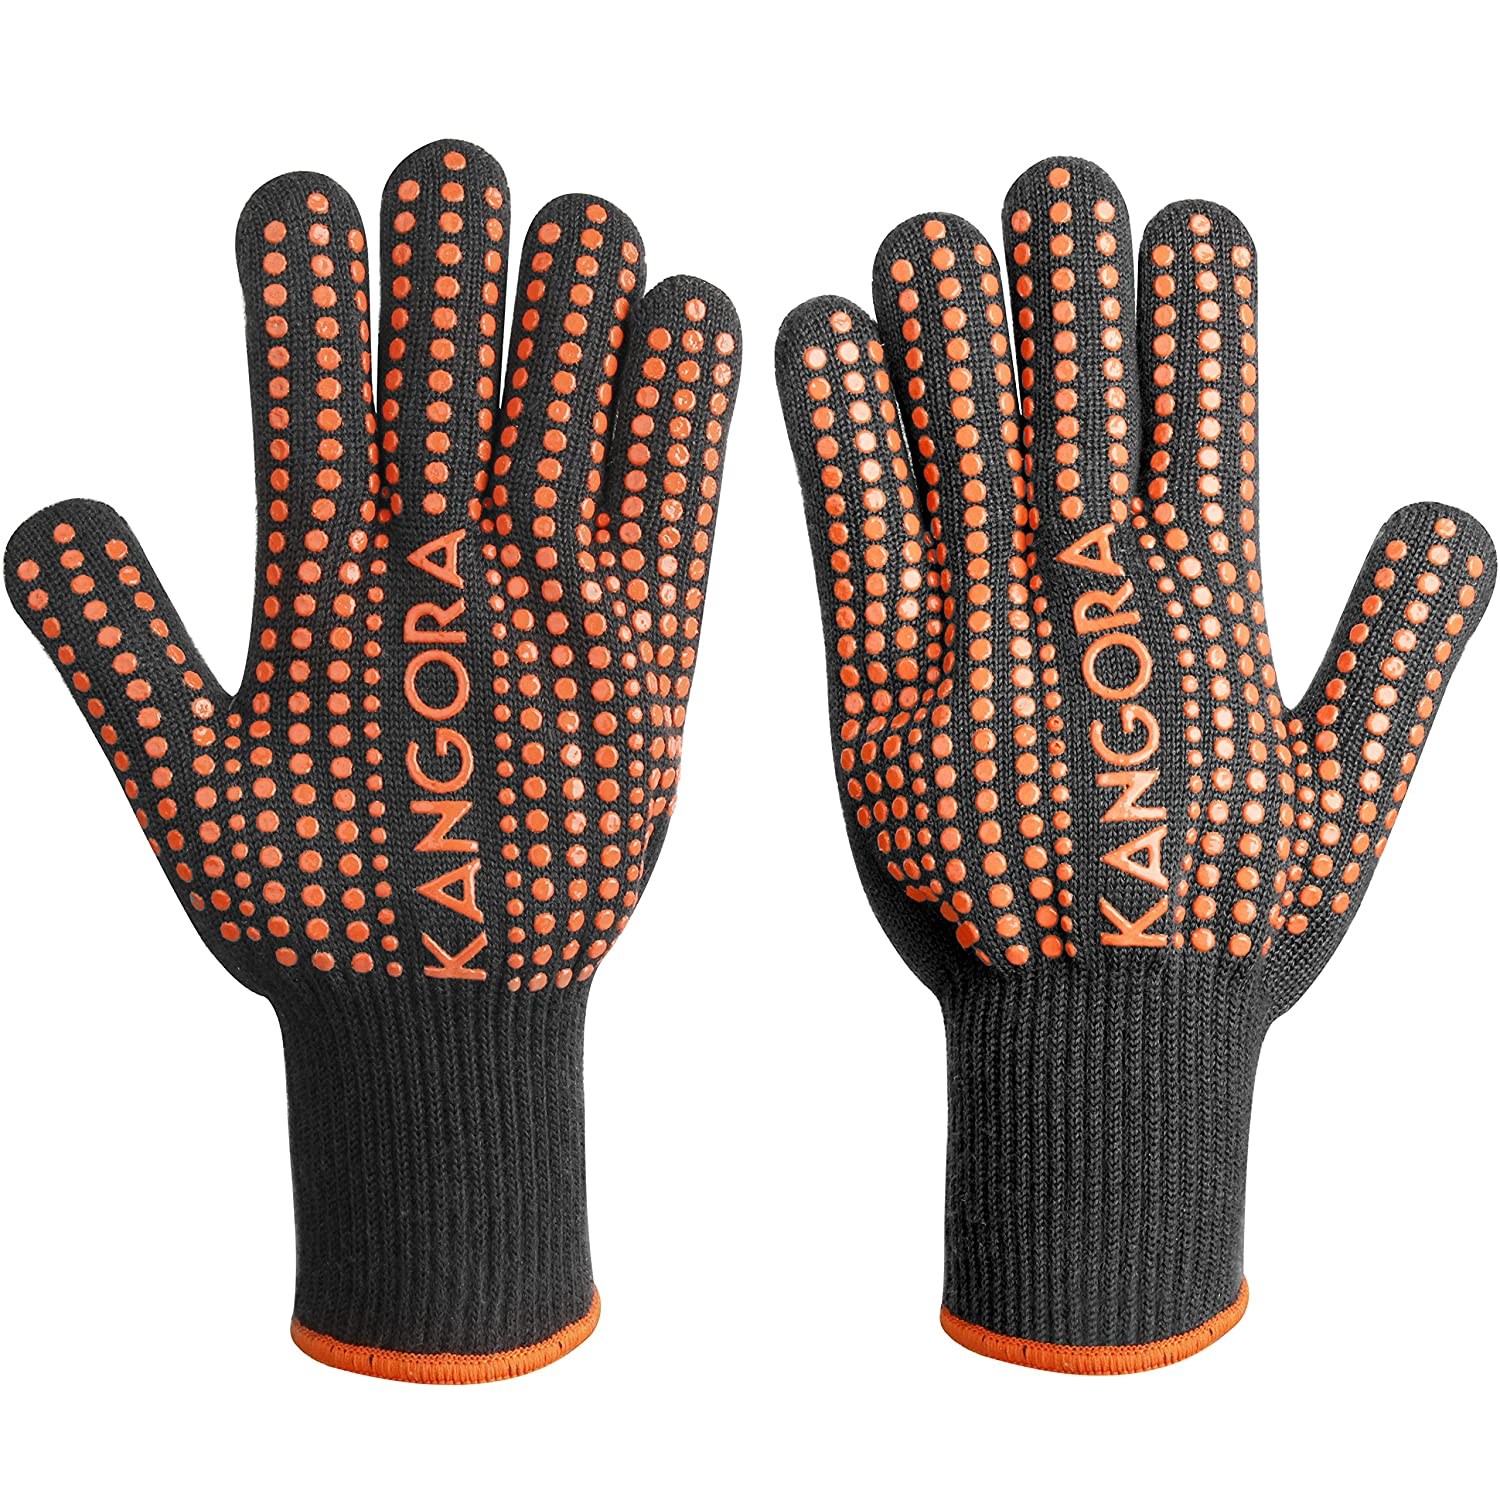 KANGORA Kitchen Cooking Gloves (Pair) Heat Resistant BBQ Grilling Oven Mitts | Non-Slip Silicone Grip, Long Safety Cuff | Protect Hands, Wrists | Barbecue, Stove, Oven Safe (Orange)